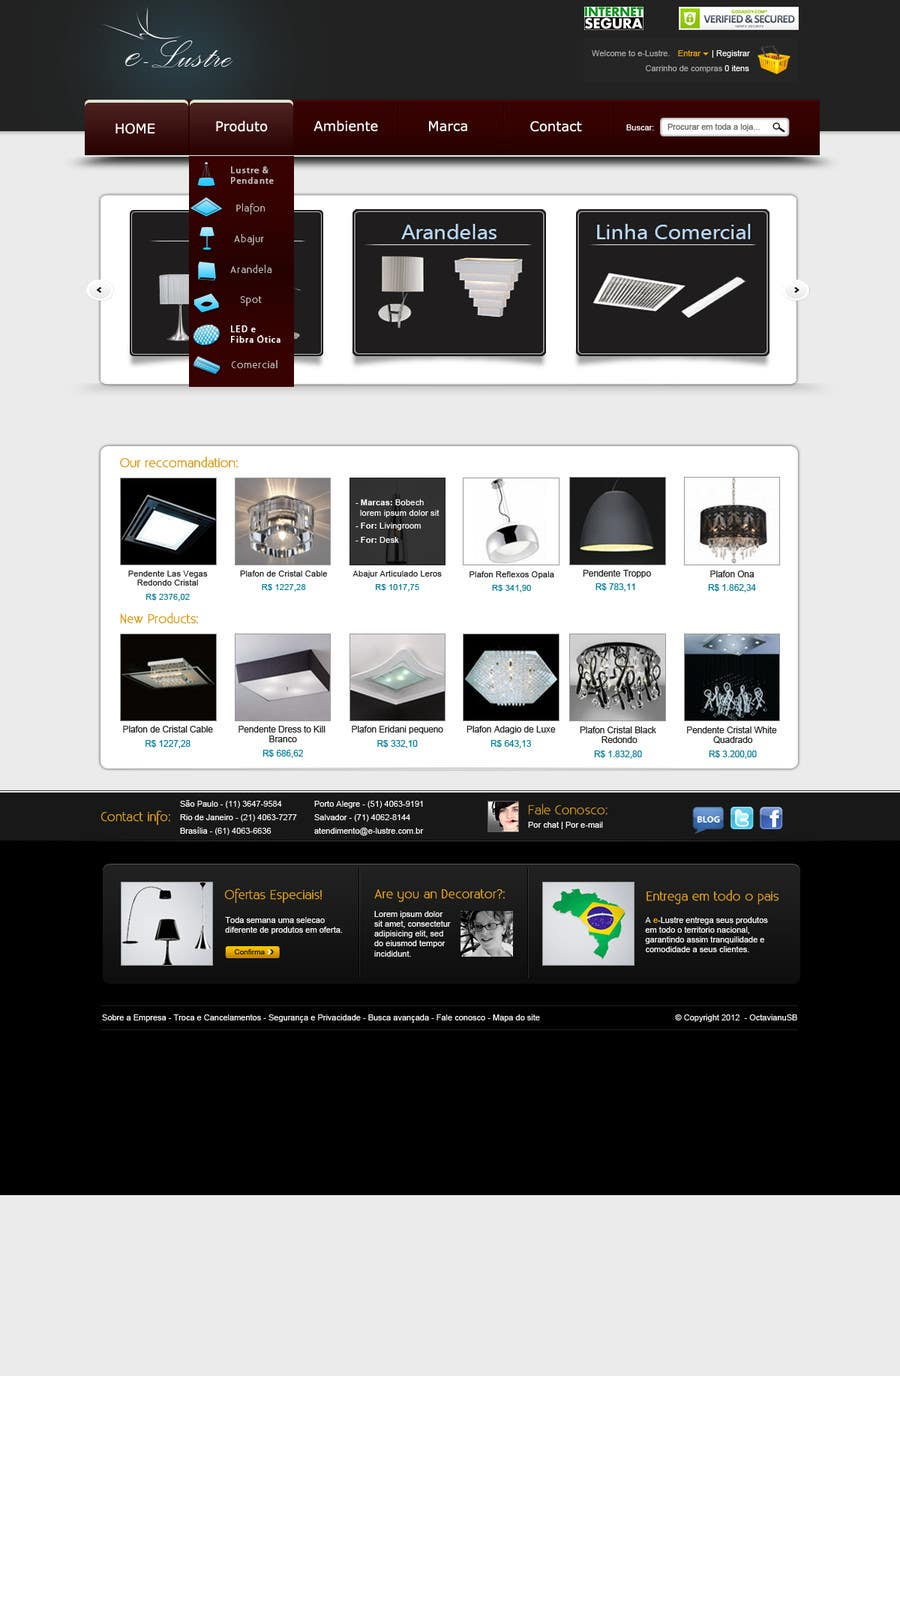 #6 for Home-Page REVAMP (improve layout of the main page) by kpk1l